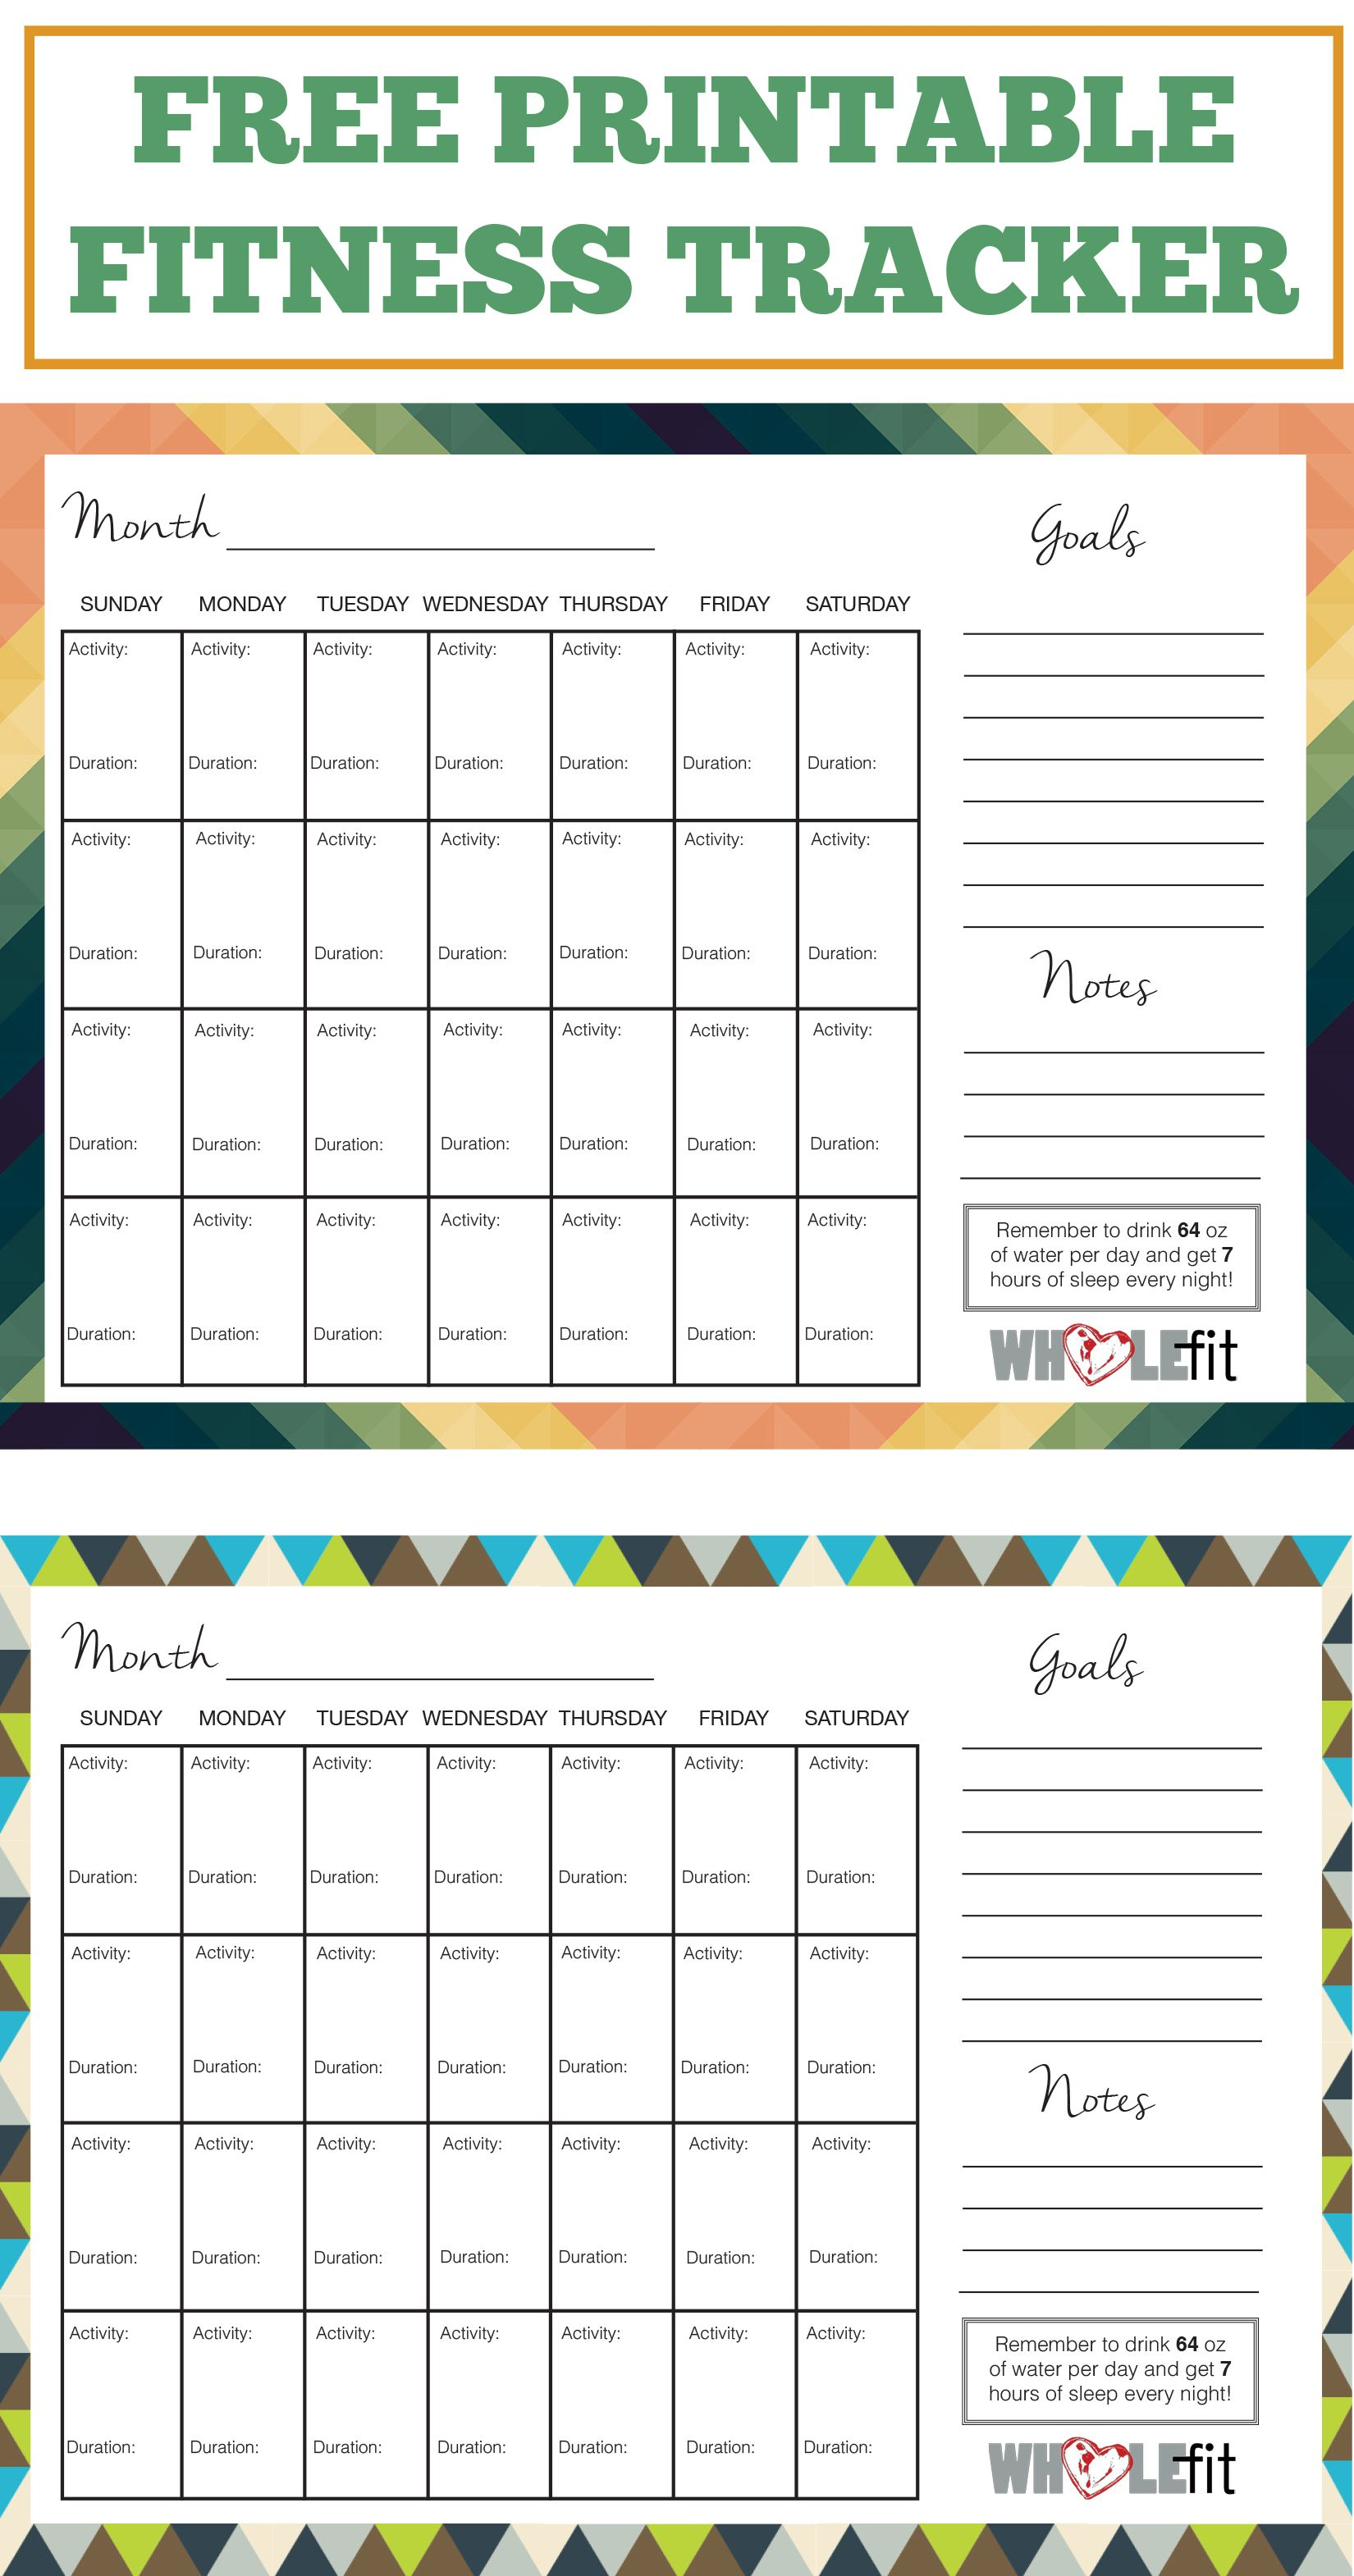 Track Your Progress With These Free Printable Fitness